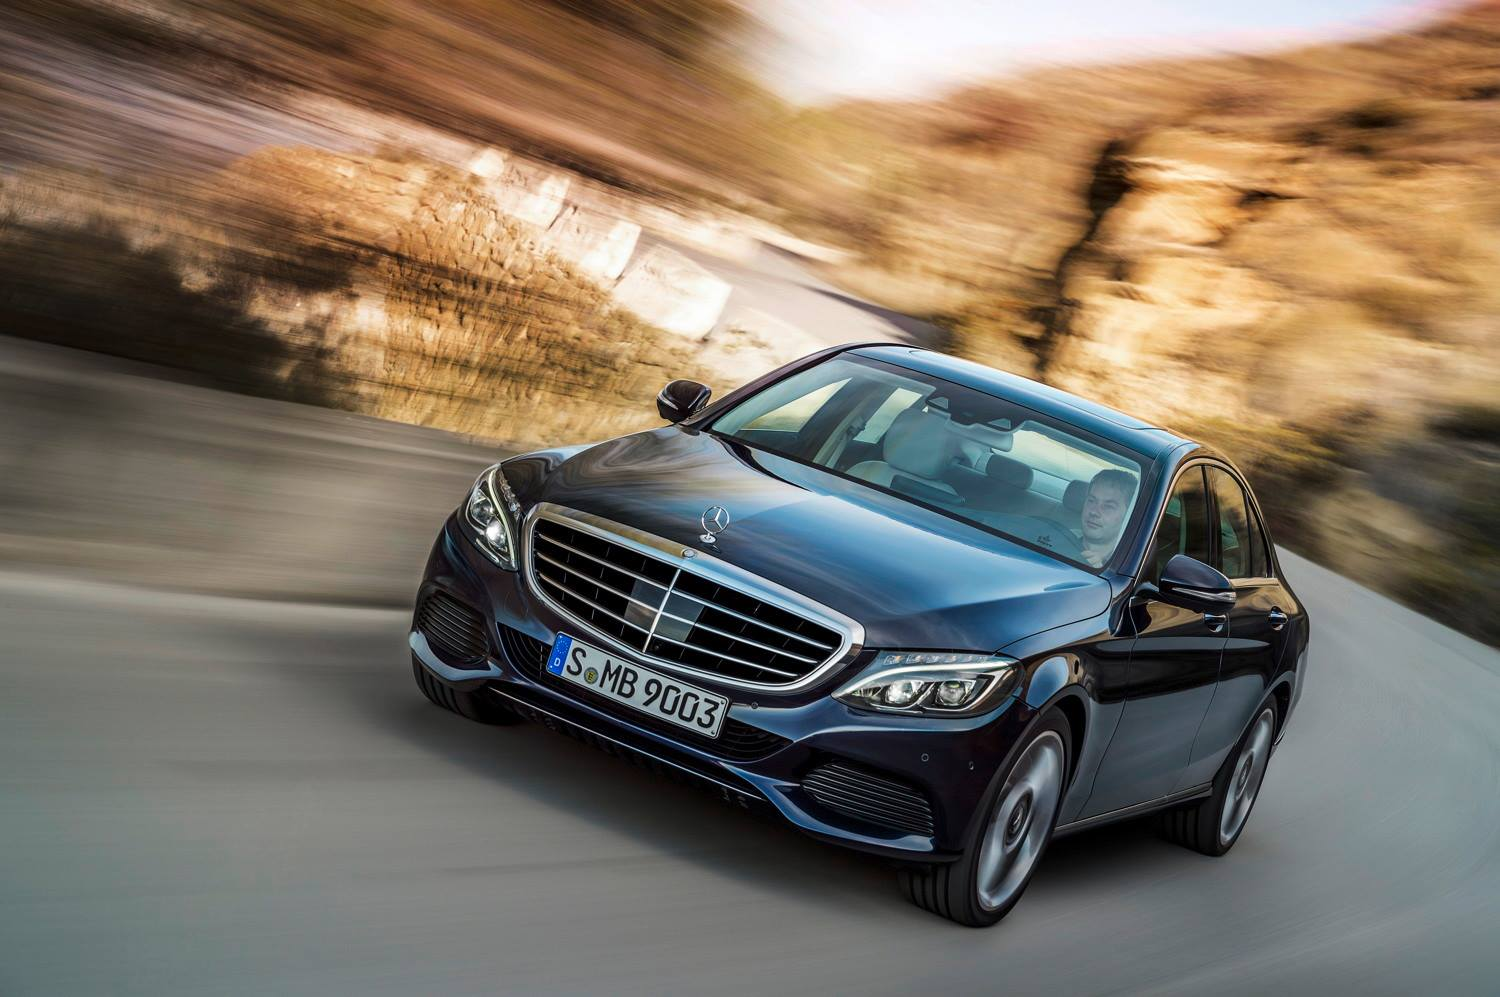 1497972 10152088127811670 494540438 o Official: Next Gen Mercedes C Class Revealed